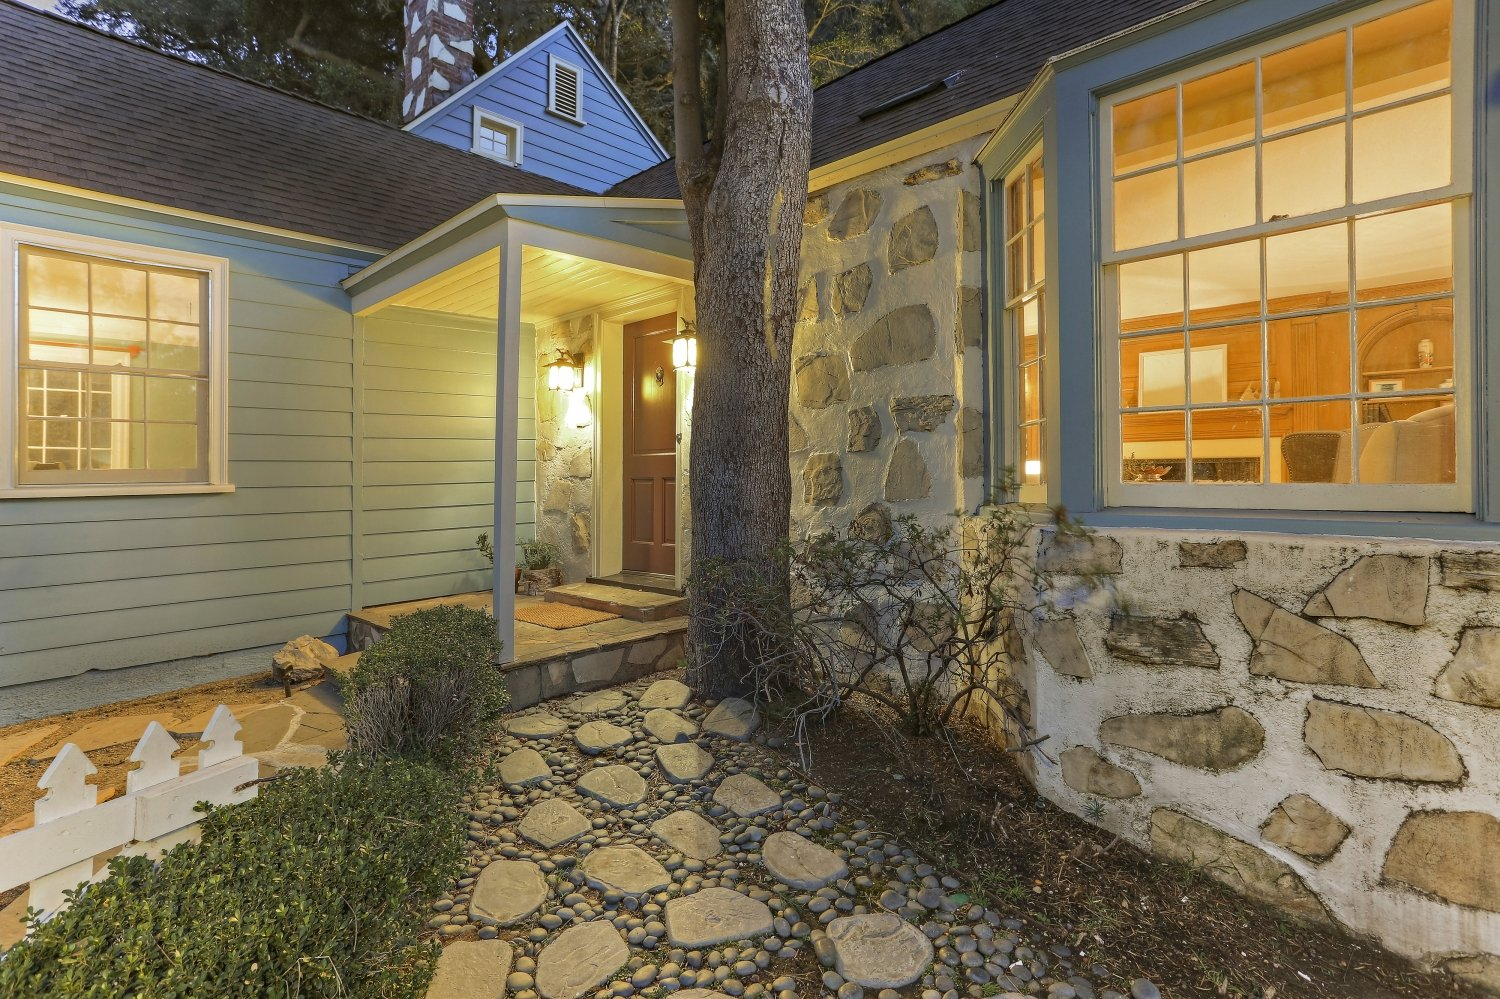 Pennsylvania Dutch Cottage Gerard Colford for sale in Glendale CA - Front Door Entrance